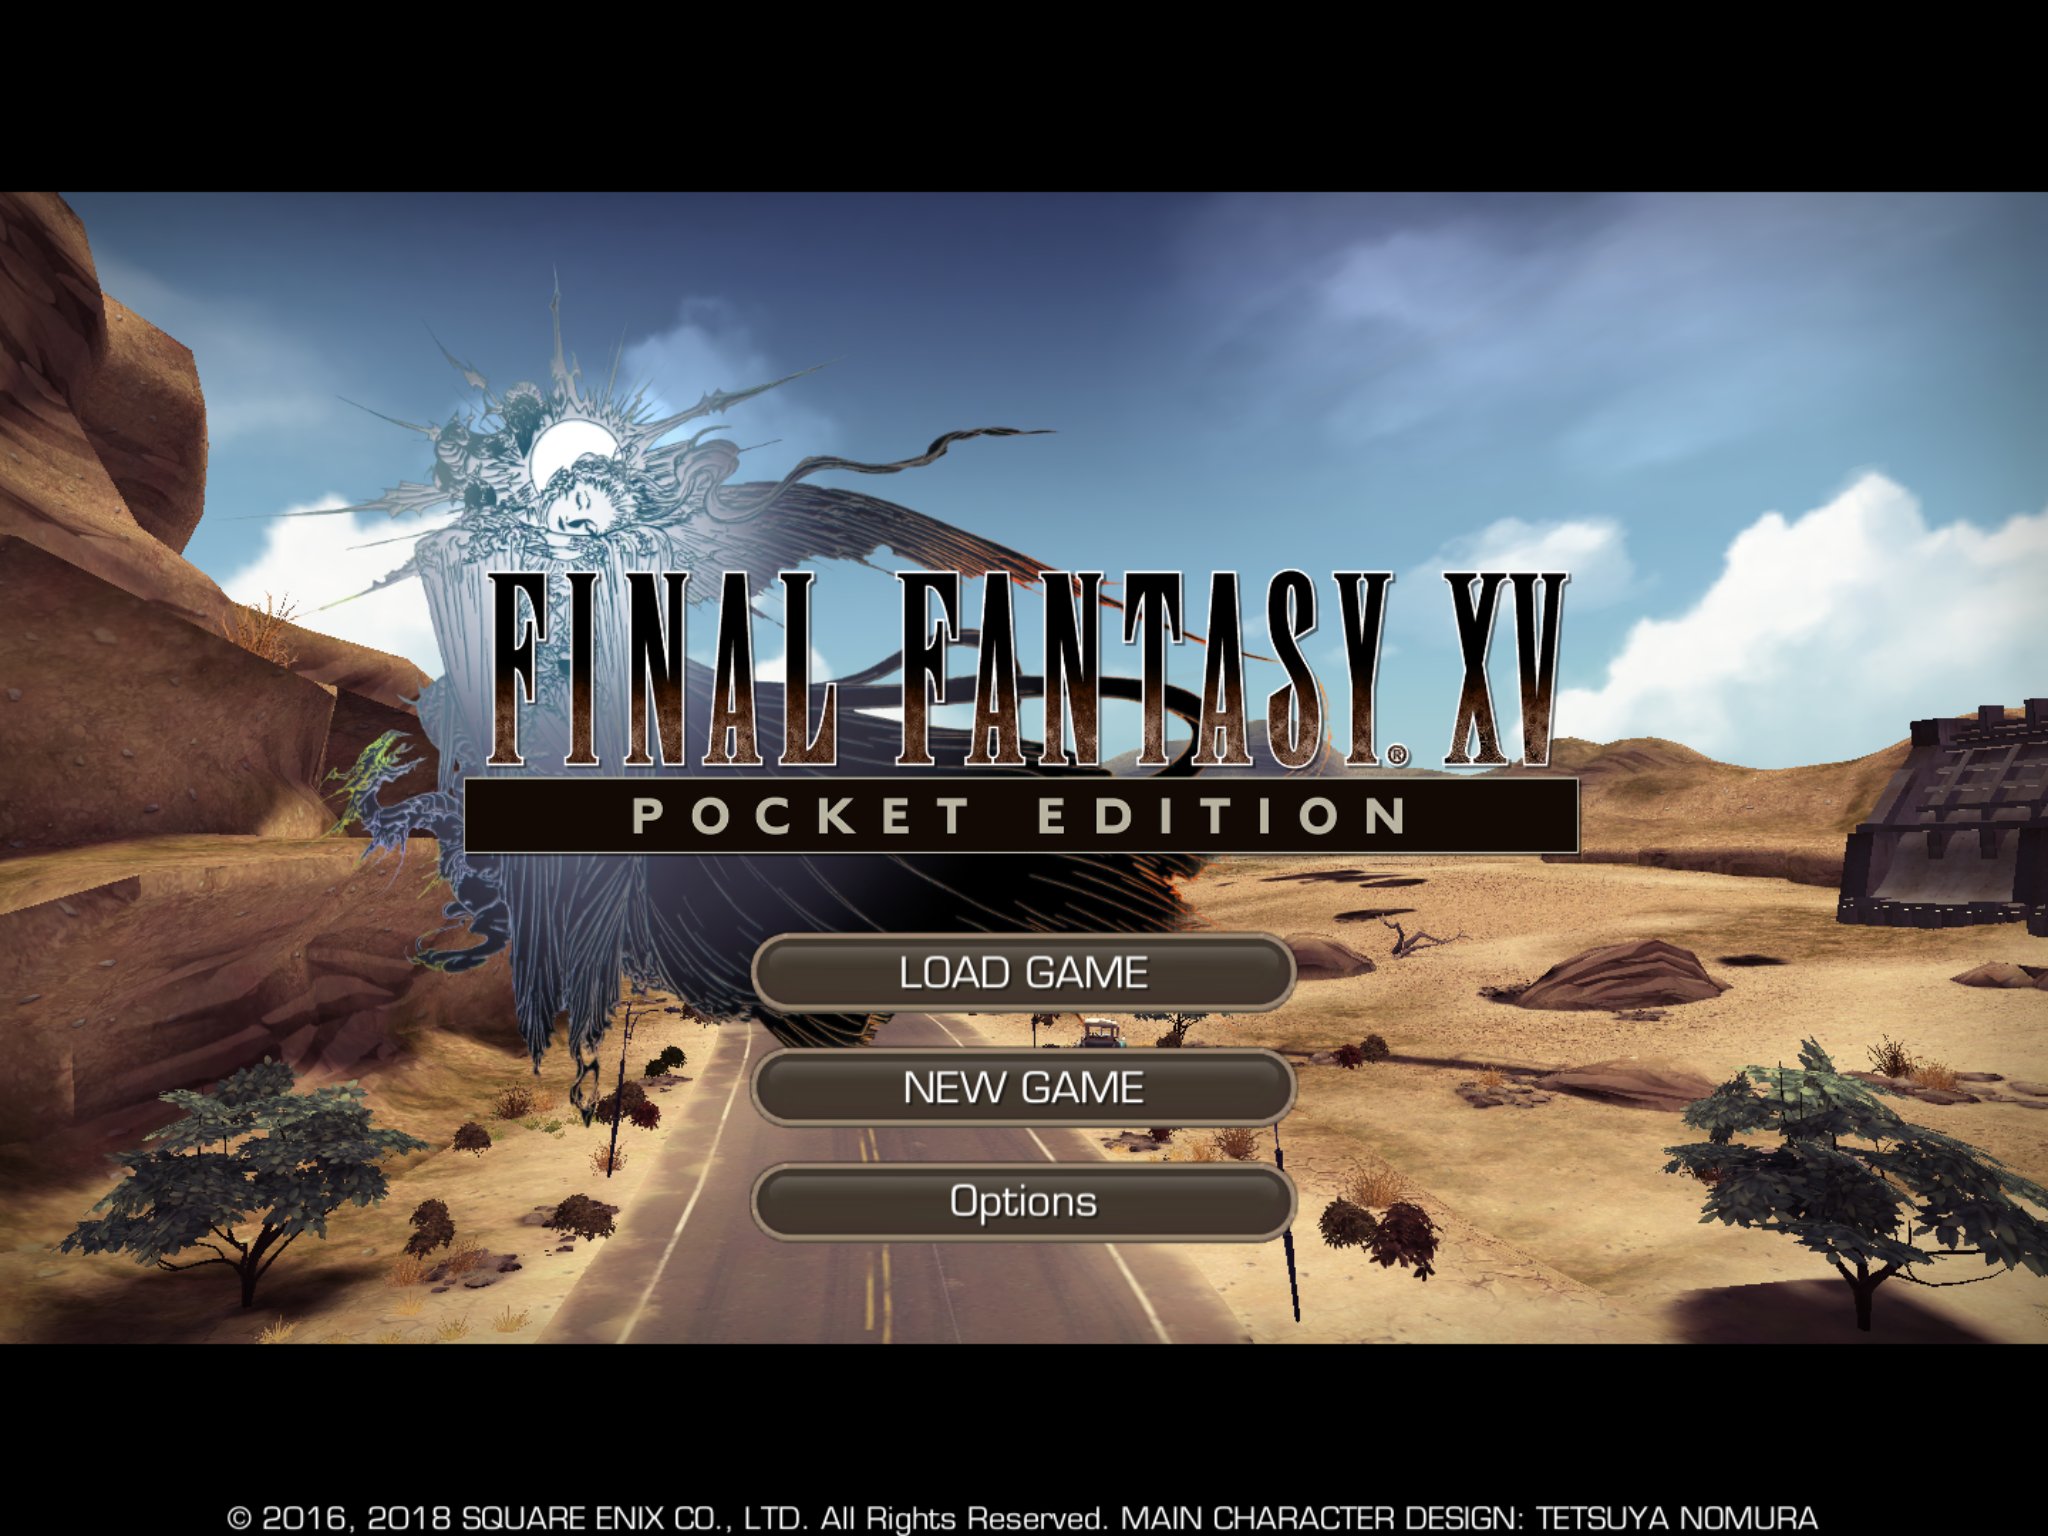 Final Fantasy XV Pocket Edition review - A startling